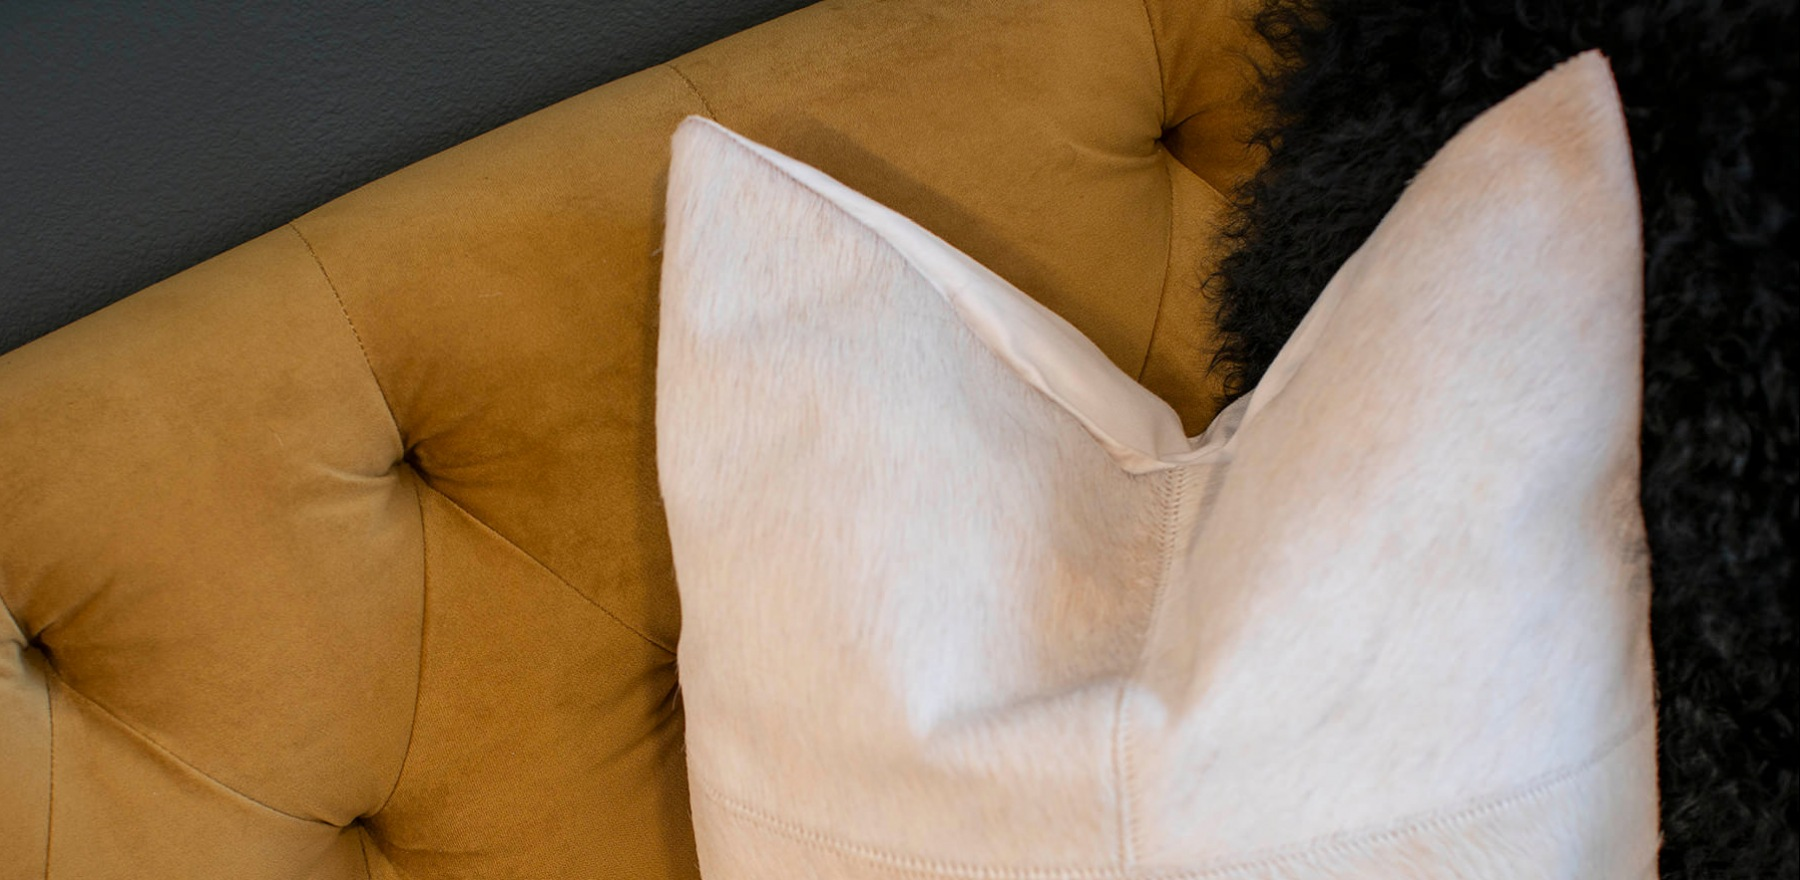 decorative pillows on couch